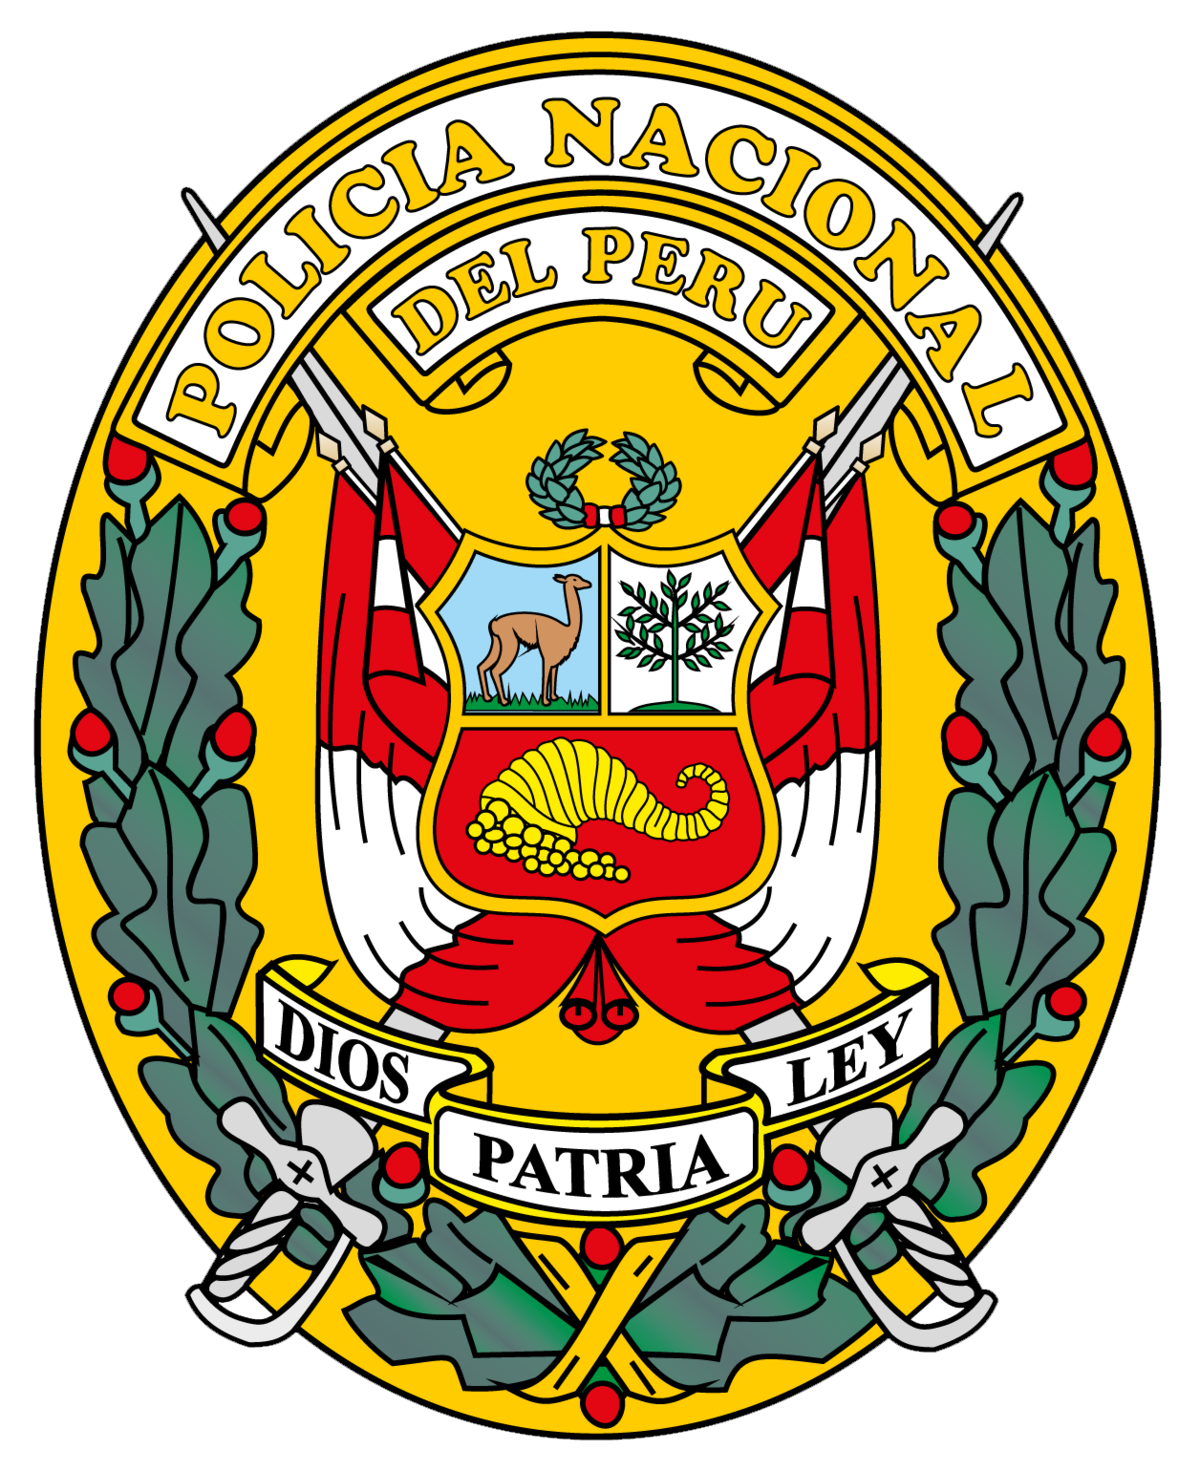 Fire department maltese cross unequal clipart. National police of peru